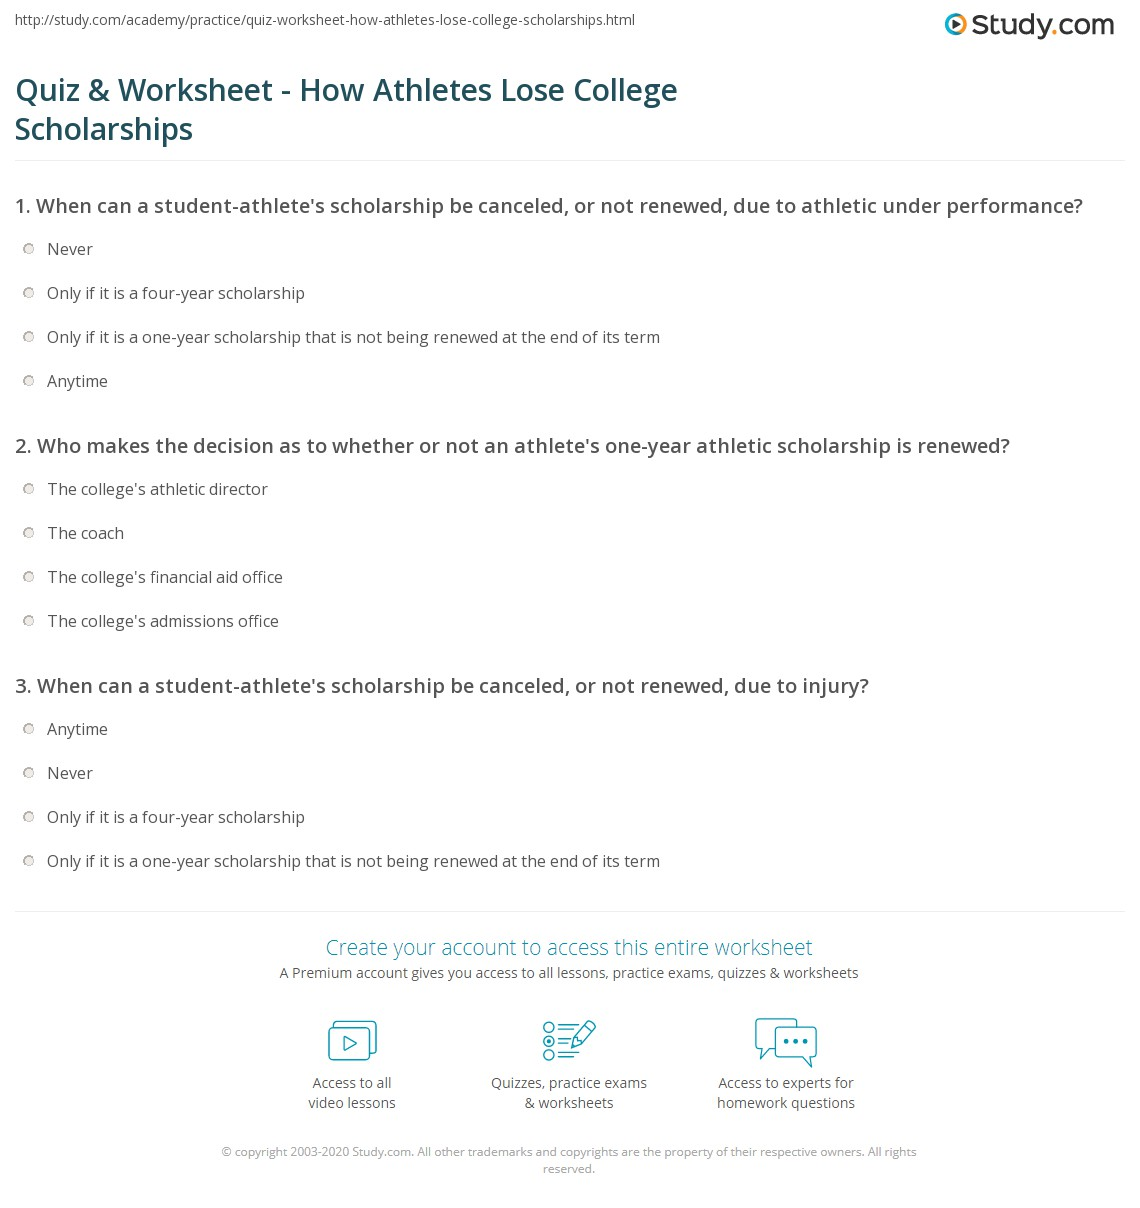 Quiz & Worksheet - How Athletes Lose College Scholarships | Study.com1. Who makes the decision as to whether or not an athlete's one-year athletic scholarship is renewed? The college's athletic director